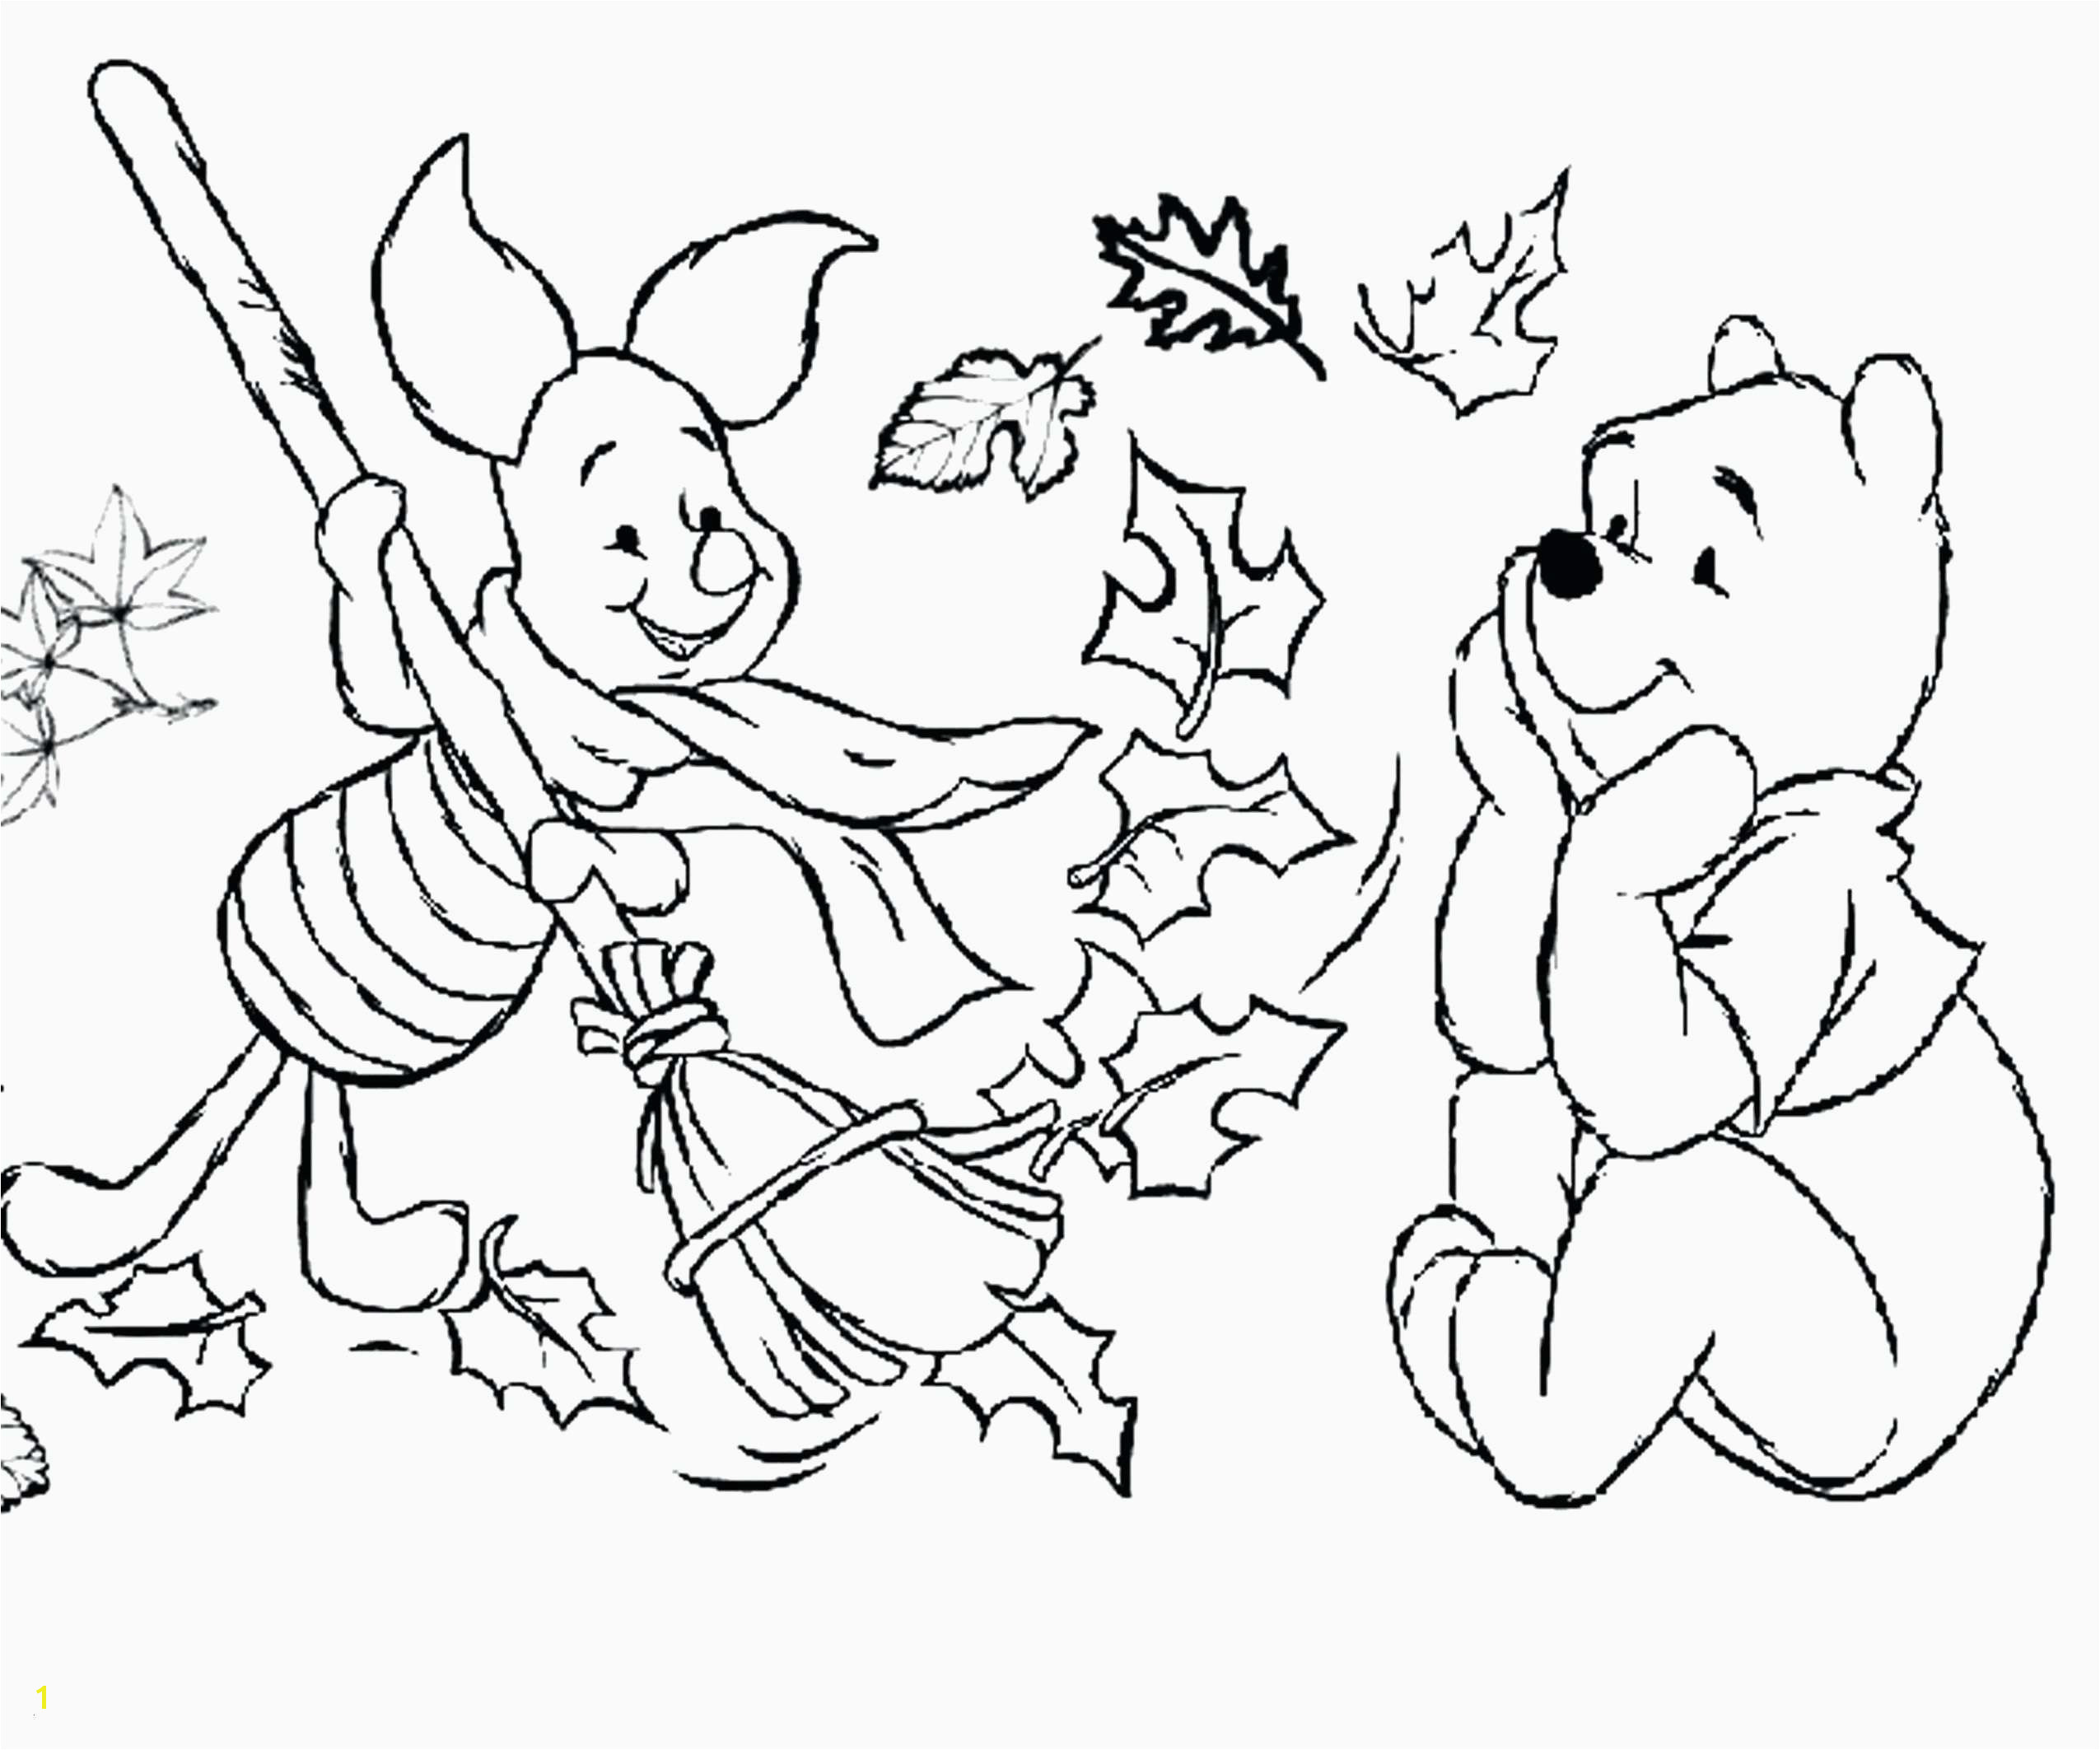 Tiana Coloring Pages Fall Coloring Pages 0d Page for Kids Inspirational Kidsboys Preschool Colouring Fancy